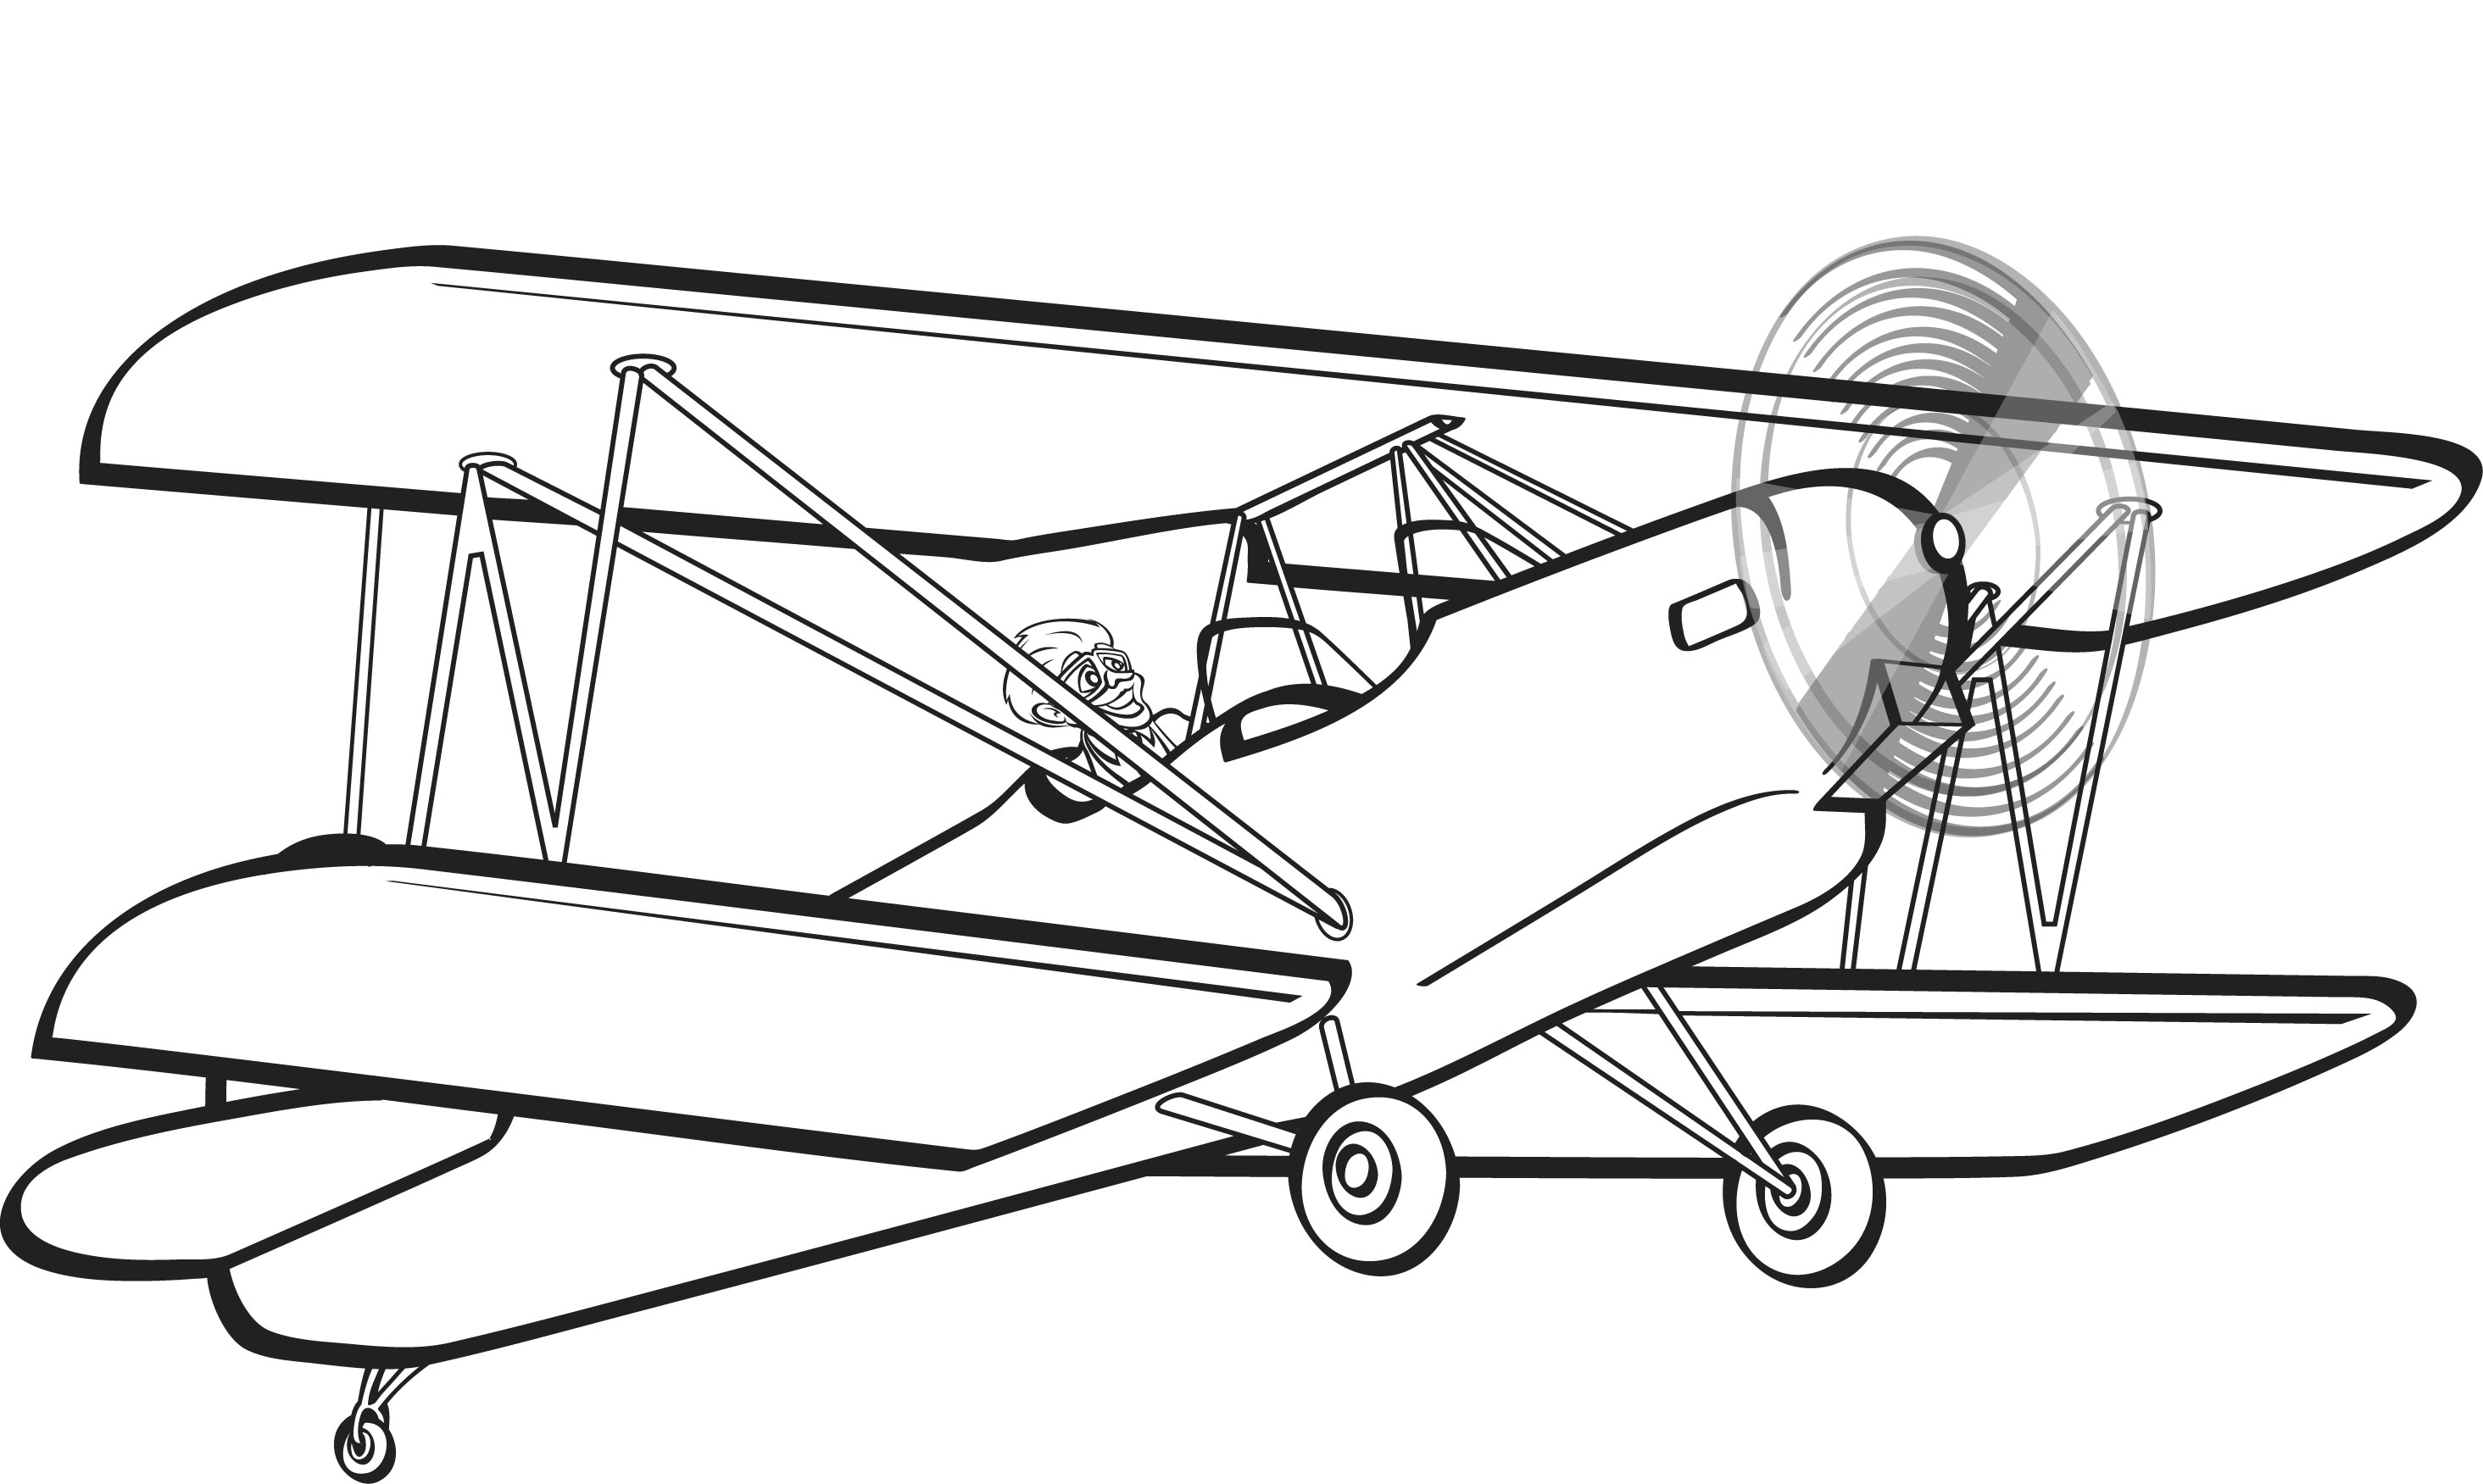 Biplane clipart coloring page. Image of clip art